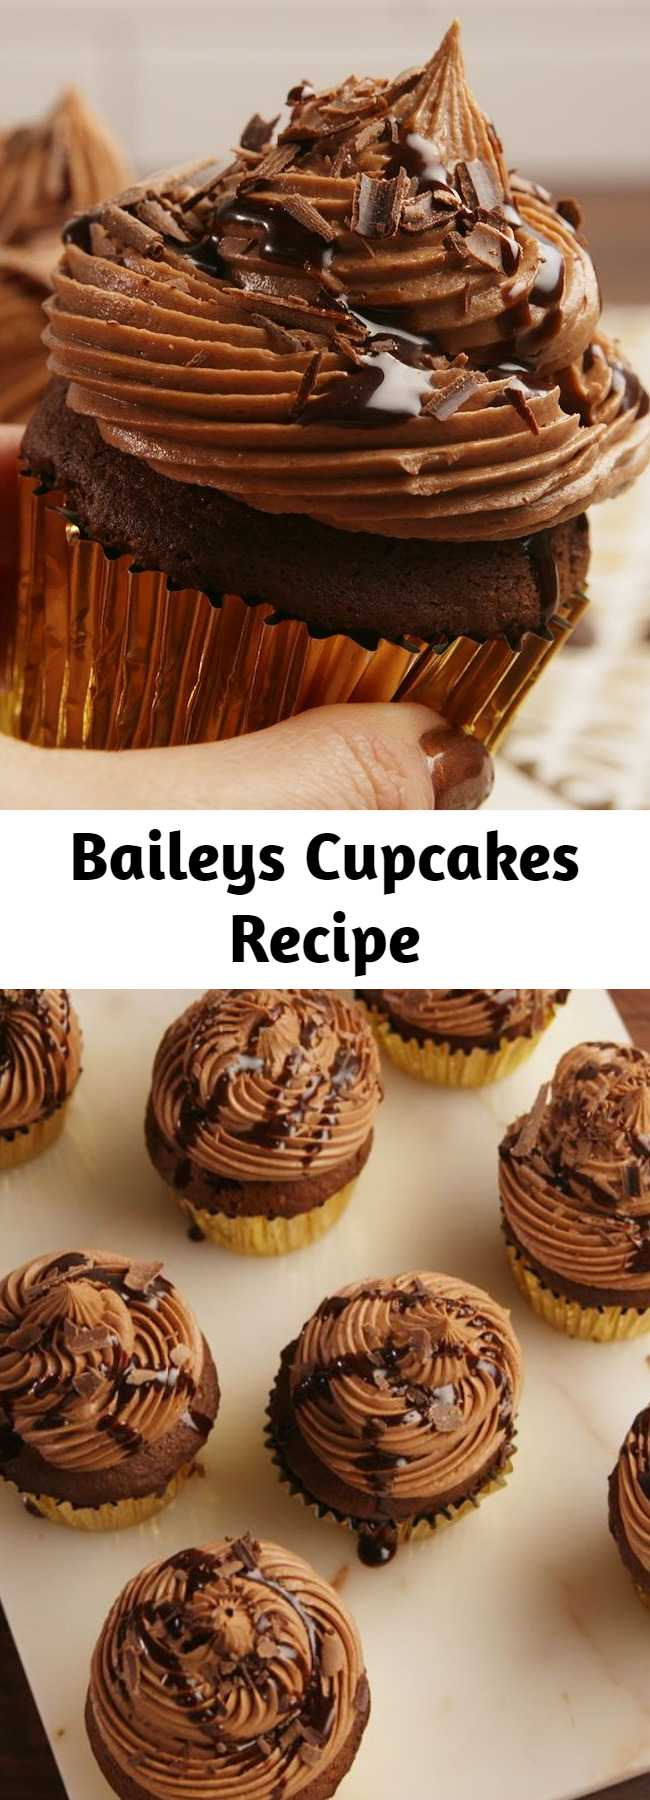 Baileys Cupcakes Recipe - These cupcakes are perfect for Baileys lovers. All cupcakes should be boozy.